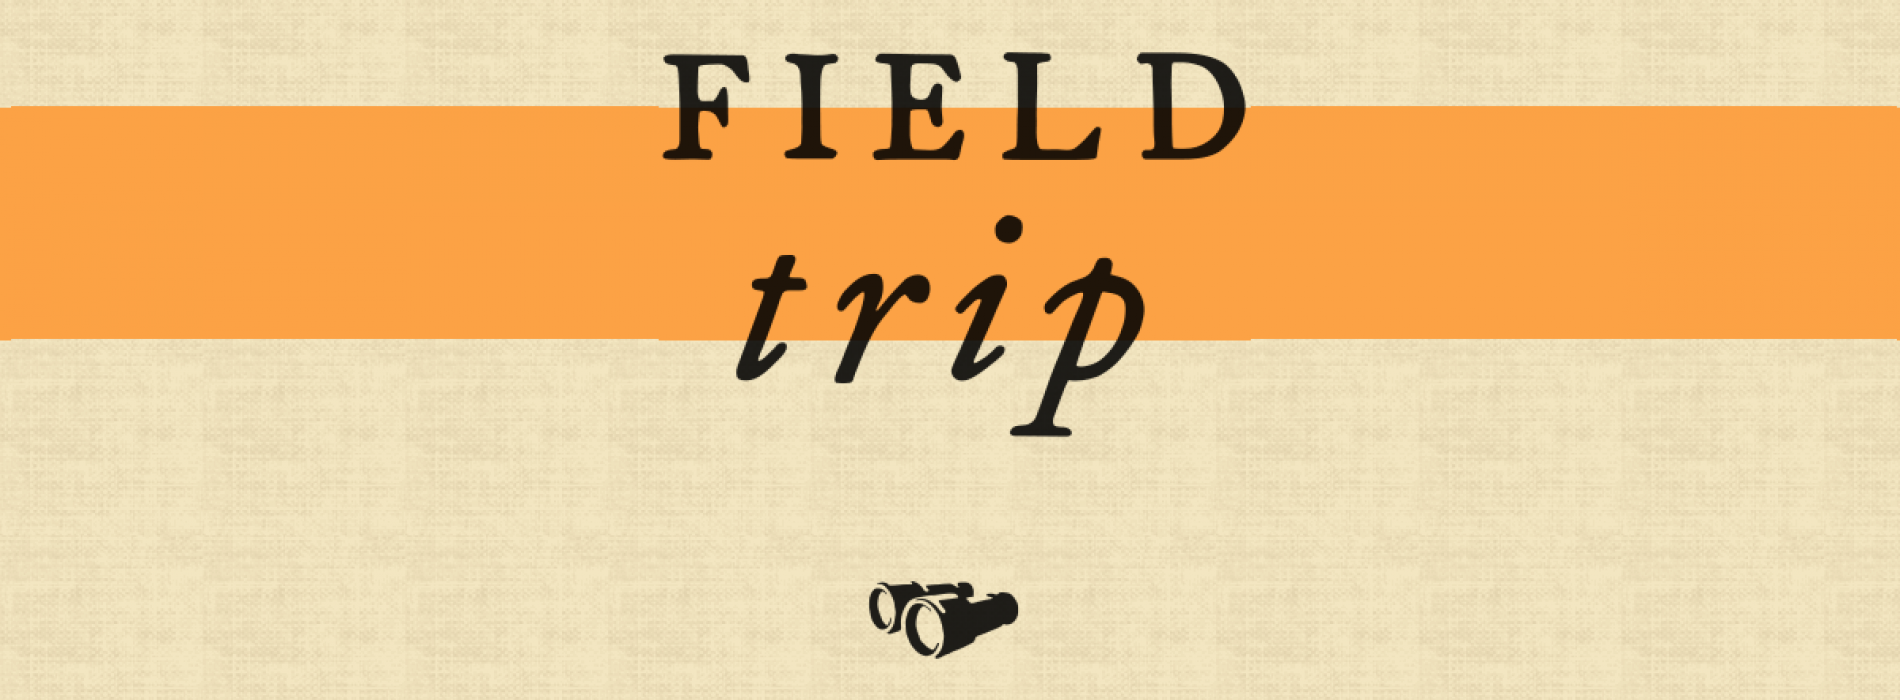 Field Trip cards to soon appear in Google Now